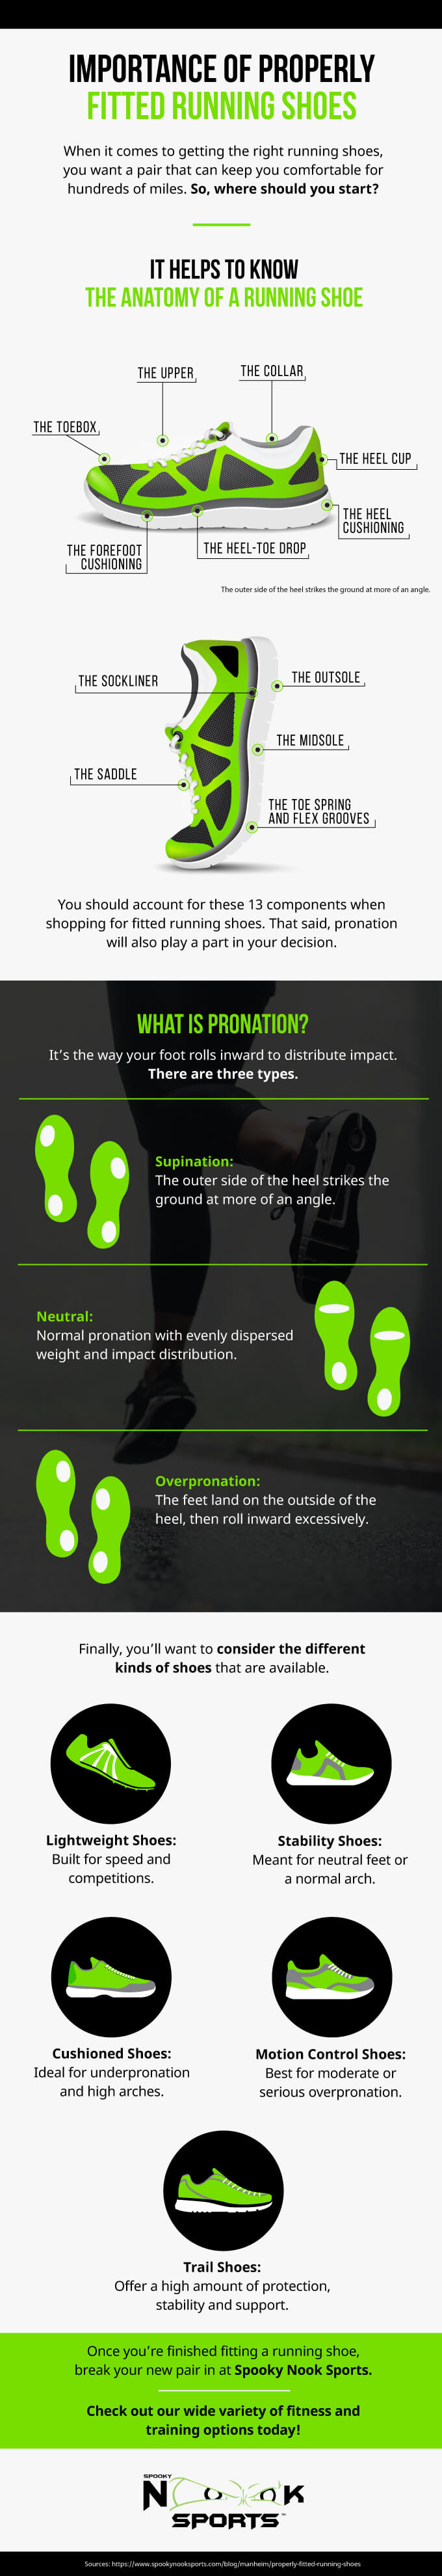 infographic properly fitted running shoes